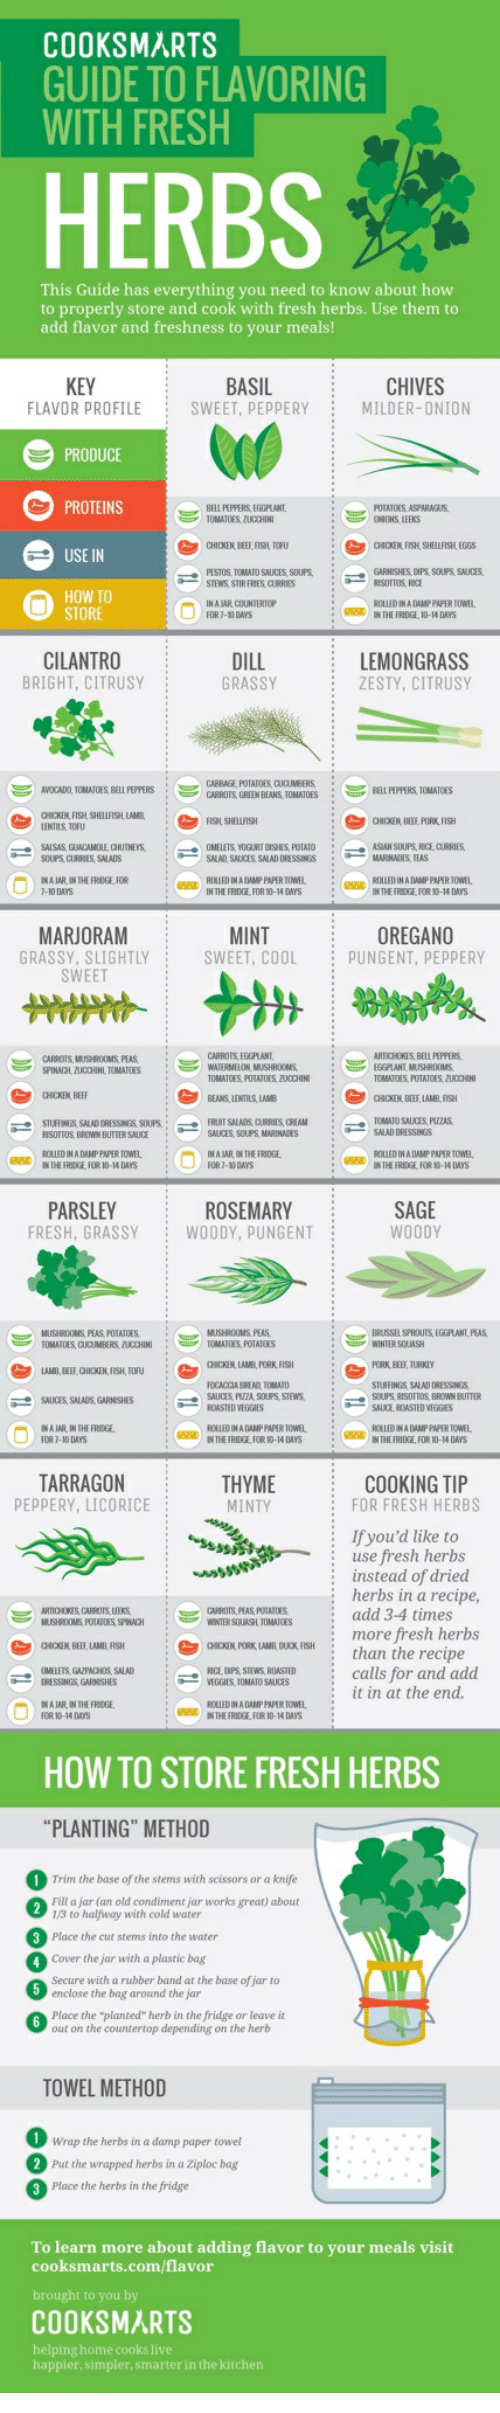 "Beef, Fresh, and Guacamole: COOKSMARTS  GUIDE TO FLAVORING  WITH FRESH  HERBS  This Guide has everything you need to know about how  to properly store and cook with fresh herbs. Use them to  add flavor and freshness to your meals!  BASIL  SWEET, PEPPERY  CHIVES  MILDER-ONION  FLAVOR PROFILE  PRODUCE  PROTEINS  BELL PEPPERS, EGGPLANT,  TOMATOES ZUCCHINI  S ASPARAGUS,  CHICKEN FISHI SHELFISHL EGS  GARIESHES, DIPS, SOLPS SAUCES.  → PESOS. TOMATO SAUCES,SOUPS.  STEWS STIR FRIES CURRIES  :  -e  STORE  ROLLED INA DAMP PAPER TOWEL  IN THE FRIDGE, 10-14 DAYS  FOR 7-10 DAYS  CILANTRO  BRIGHT, CITRUSY  DILL  GRASSY  LEMONGRASS  ZESTY, CITRUSY  AVOCADO, TOMATOES. BELL PEPPERS  BELL PEPPERS TOMATOES  CARROTS, GREEN BEANS, TOMATOES  CHICKEN, FISH SHELILFISHL LAMB  CHIKEN, B旺PORK. FISH  LENTILS TOFU  SALSAS, GUACAMOLE, UTNEYS.  SOUPS CURRIES SALADS  →  ROLLED IN A DAMP PAPER TOWEL  IN THE FRDGE FOR 10-4 DAYS  ROLUED IN A DAMP PAPER TOWEL  IN THE FRIDGE FOR 10-14 DAYS  MARJORAM  GRASSY, SLIGHTLY  SWEET  MINT  SWEET, COOLPUNGENT, PEPPERY  OREGANO  WATERMELON MUSHROOMS  TOMATOES, POTATOES, DUCCHINI  BEANS,LENTILS LAMB  SPINACH ZUCCHINL TOMATOES  TOMATOES, POTATOES, ZUCCHNI  RSOTTOS, BROWN BUTTER SAUCE  SAUCES, SOUPS, MARINADES  SALAD DRESSINGS  ROLLED IN A DAMP FAPER TOWEL  NTHE FRIDGE FOR 10-14DAYS  ROLLED IN A DAMP PAPER TOWEL  區  PARSLEY  FRESH, GRASSY  ROSEMARY  WOODY, PUNGENT  MUSHROOMS PEAS, POTATOES  TOMATOES, CUCUMBERS ZUCCHINITOMATOES, POTATOES  ︶ ERIISSEL SPROUTS, EGGPLANT,PEAS  ORRN, LAMB, PORK FISH  LAMB,BEEF, CHI XEN, FISH, TOFU  :  シ  :  OCACCIA EREAD TOMATO  SAUICES SALADS,GARNISHES  SOUPS RISOTTIOS, BRDWN BUTTER  SAI RNSTED VEGGES  涠ALAR IN THE FROGE.  FOR 7-10 DAYS  ROLLED IN A DAMP PAPER TOWEL  IN THE FRIDGE, FOR 10-14 DAYS  ROLLED IN A DAMP PAPER TOWEL  IN THE FRIDGE, FOR 10-14 DAYS  TARRAGON  PEPPERY, LICORICE  THYME COOKING TIP  MINTY  :FOR FRESH HERBS  Ifyou'd like to  instead of dried  ARTICHONES CARROTS, LEEKS  WNTER SOUASH TOMATOES  aacREM PORKUMB. Dux.RSH  RICE DIPS, STEWS,ROASTED  add 3-4 times  more  than the recipe  CHICKEN, BEEF, LAMB RSH  :  OMELETS GAZPACHOS SALAD  VEGGIES, TOMATO SAUCES  ROLLED IN A DAMP PAPER TOWEL  區ONTHE RIDGE FOR 10-14MS  FOR 10-14 DAYS  :  HOW TO STORE FRESH HERBS  PLANTING"" METHOD  Trim the base of the stems with scissors or a knife  Fill a jar (an old condiment jar works great) about  1/3 to halfway with cold water  Place the cut stems into the water  4 Cover the jar with a plastic bag  Secure with a rubber band at the base of jar to  enclose the bag around the jar  6  Place the ""planted"" herb in the fridge or leave it  TOWEL METHOD  Wrap the herbs in a damp paper t  Put the wrapped herbs in a Ziploc bag  Place the herbs in the fridge  owel  To learn more about adding flavor to your meals visit  cooksmarts.com/flavor  COOKSMARTS  helping home cooks live  happier, simpler, smarter in the kitchen"